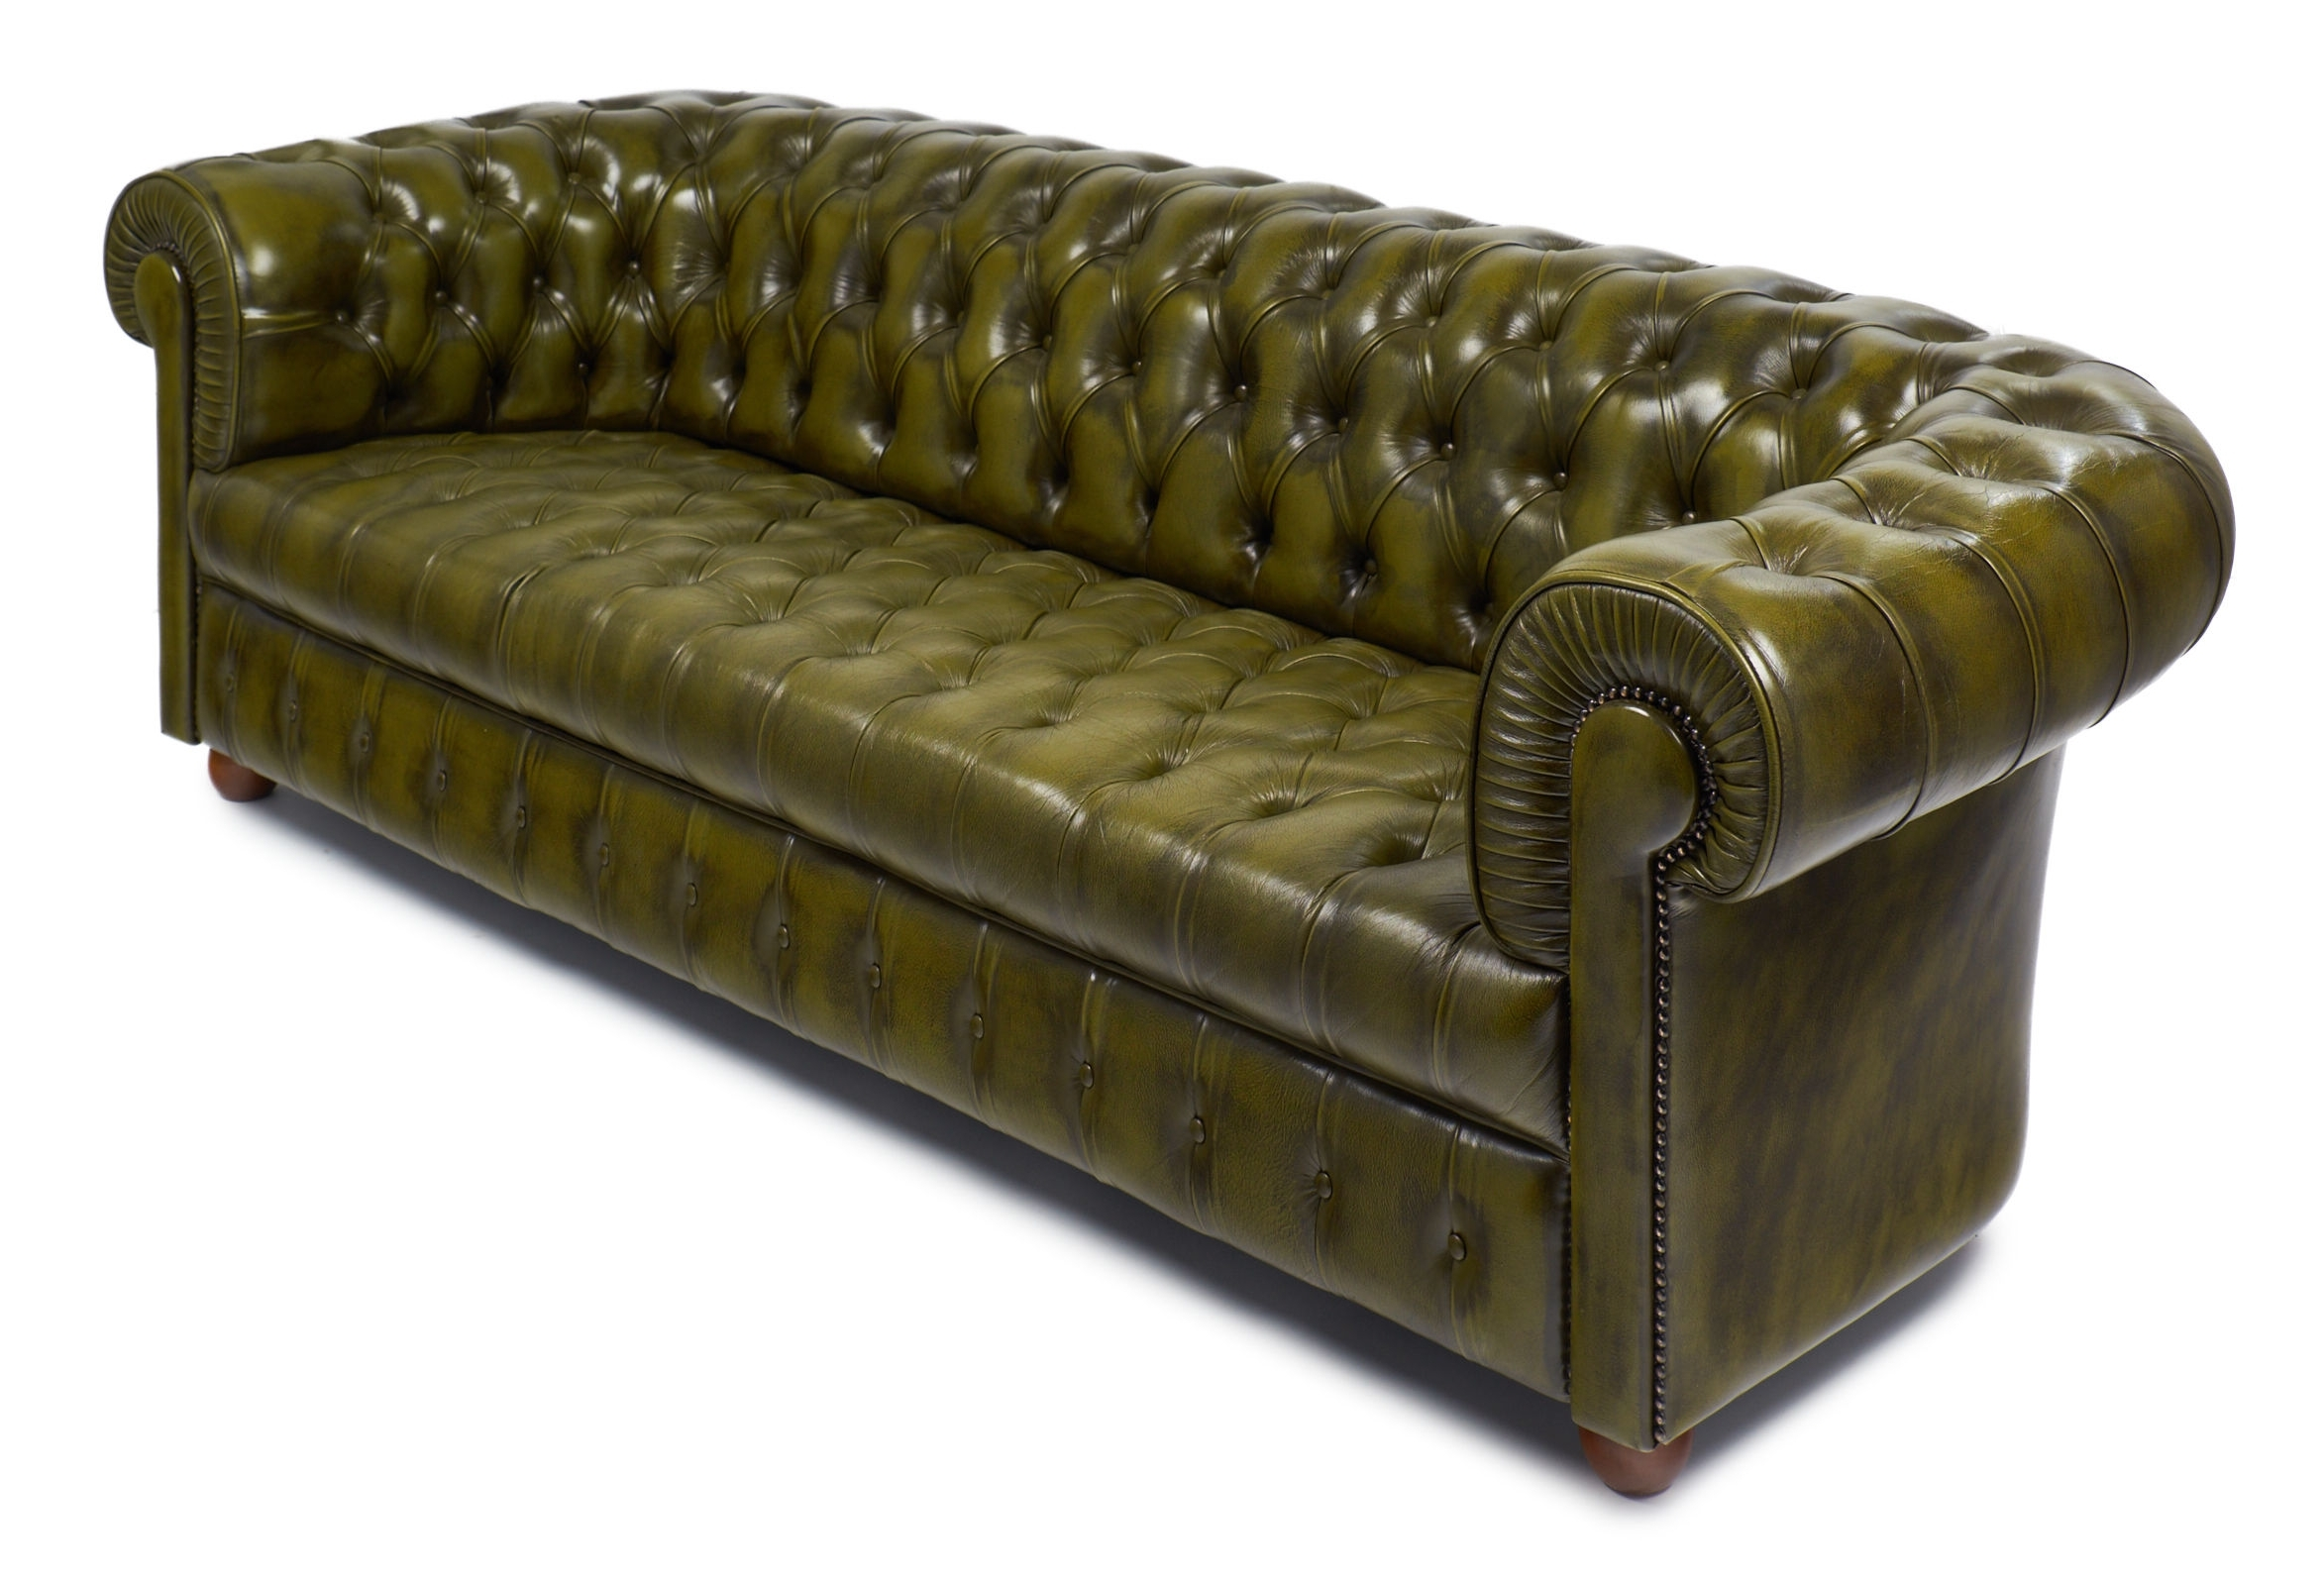 Vintage Green Leather English Chesterfield Sofa – Jean Marc Fray With Regard To Preferred Vintage Chesterfield Sofas (View 8 of 15)